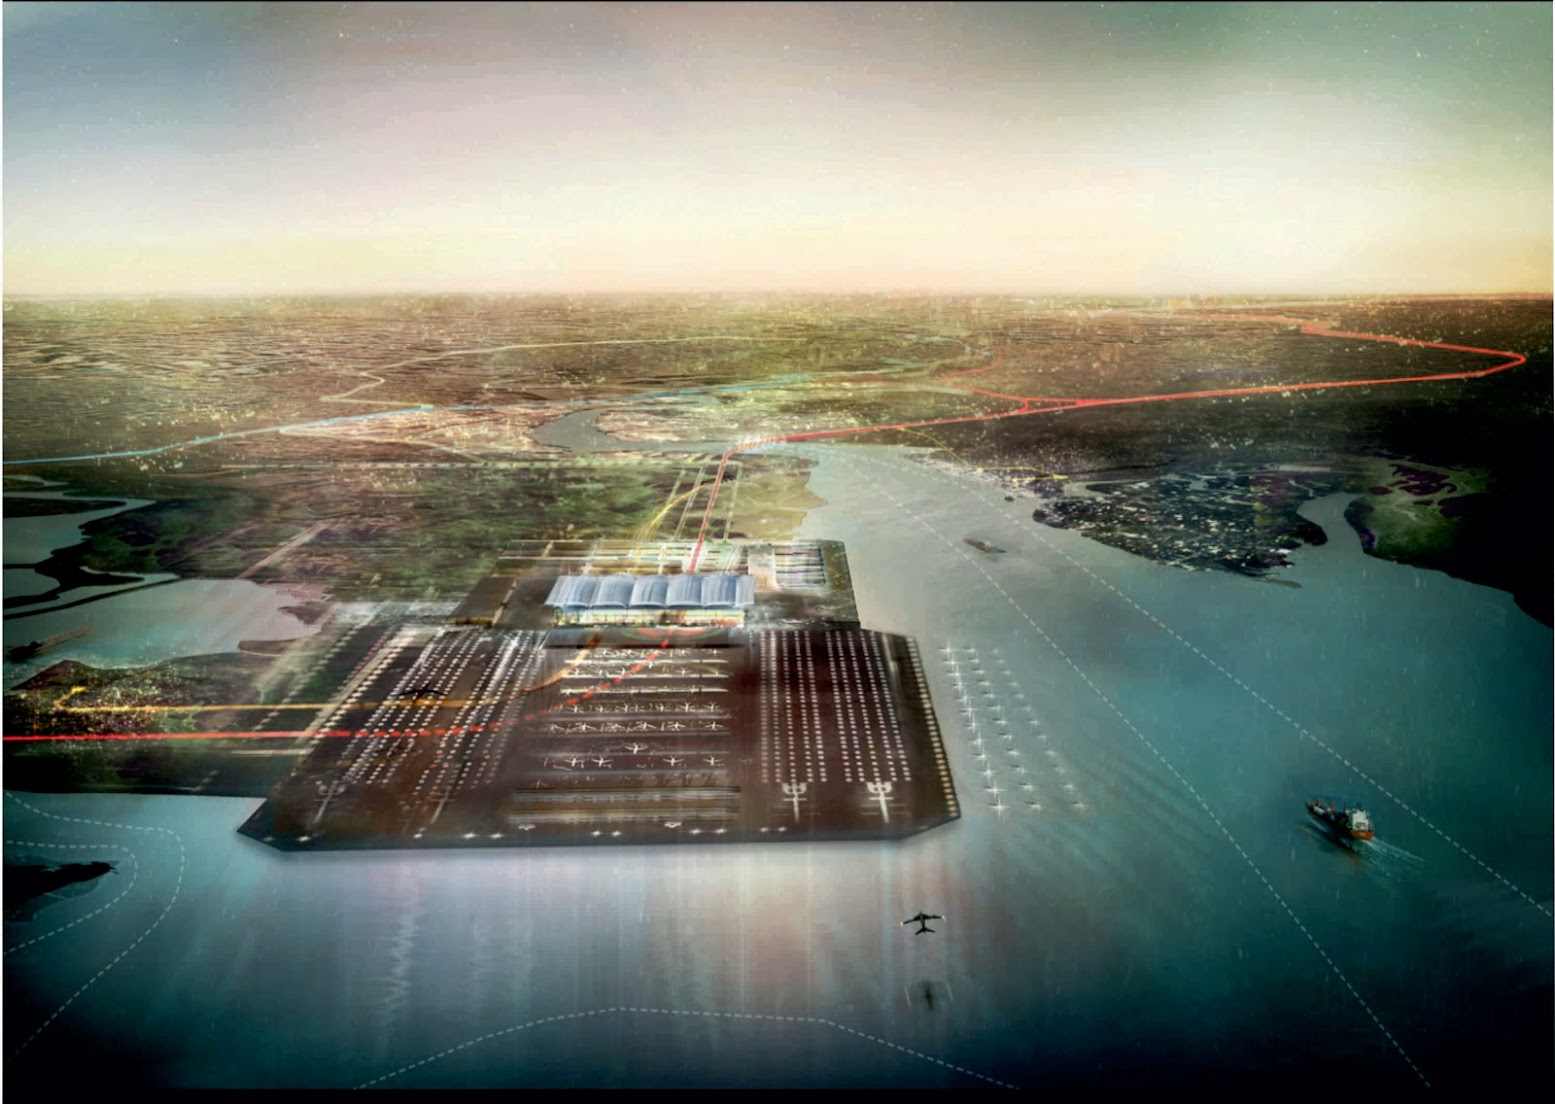 Londra, Regno Unito: [THAMES HUB BY FOSTER + PARTNERS]